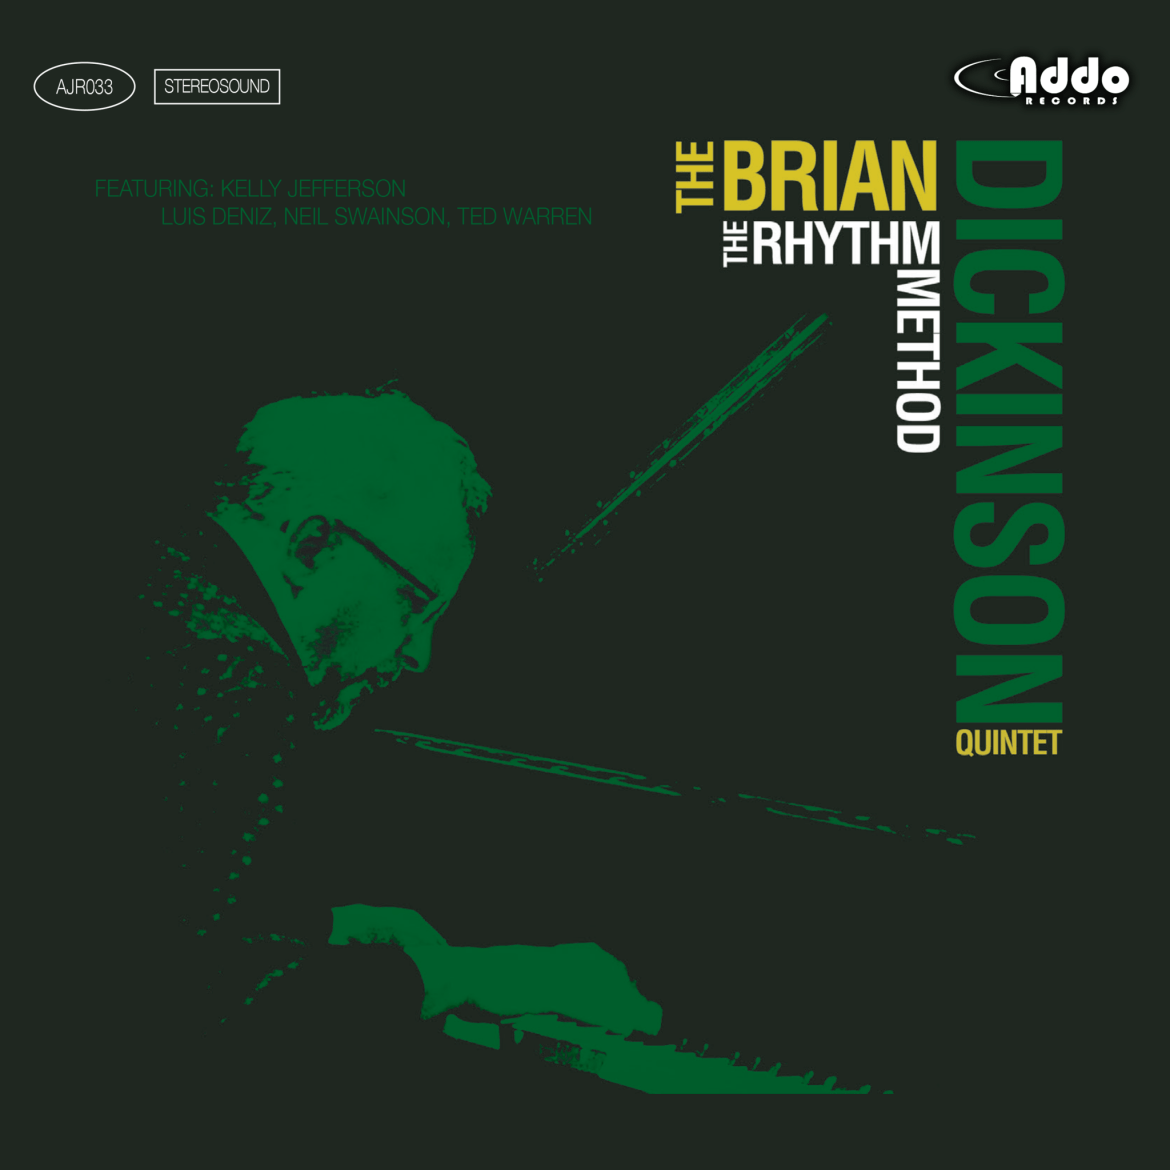 Brian Dickinson The Rhythm Method